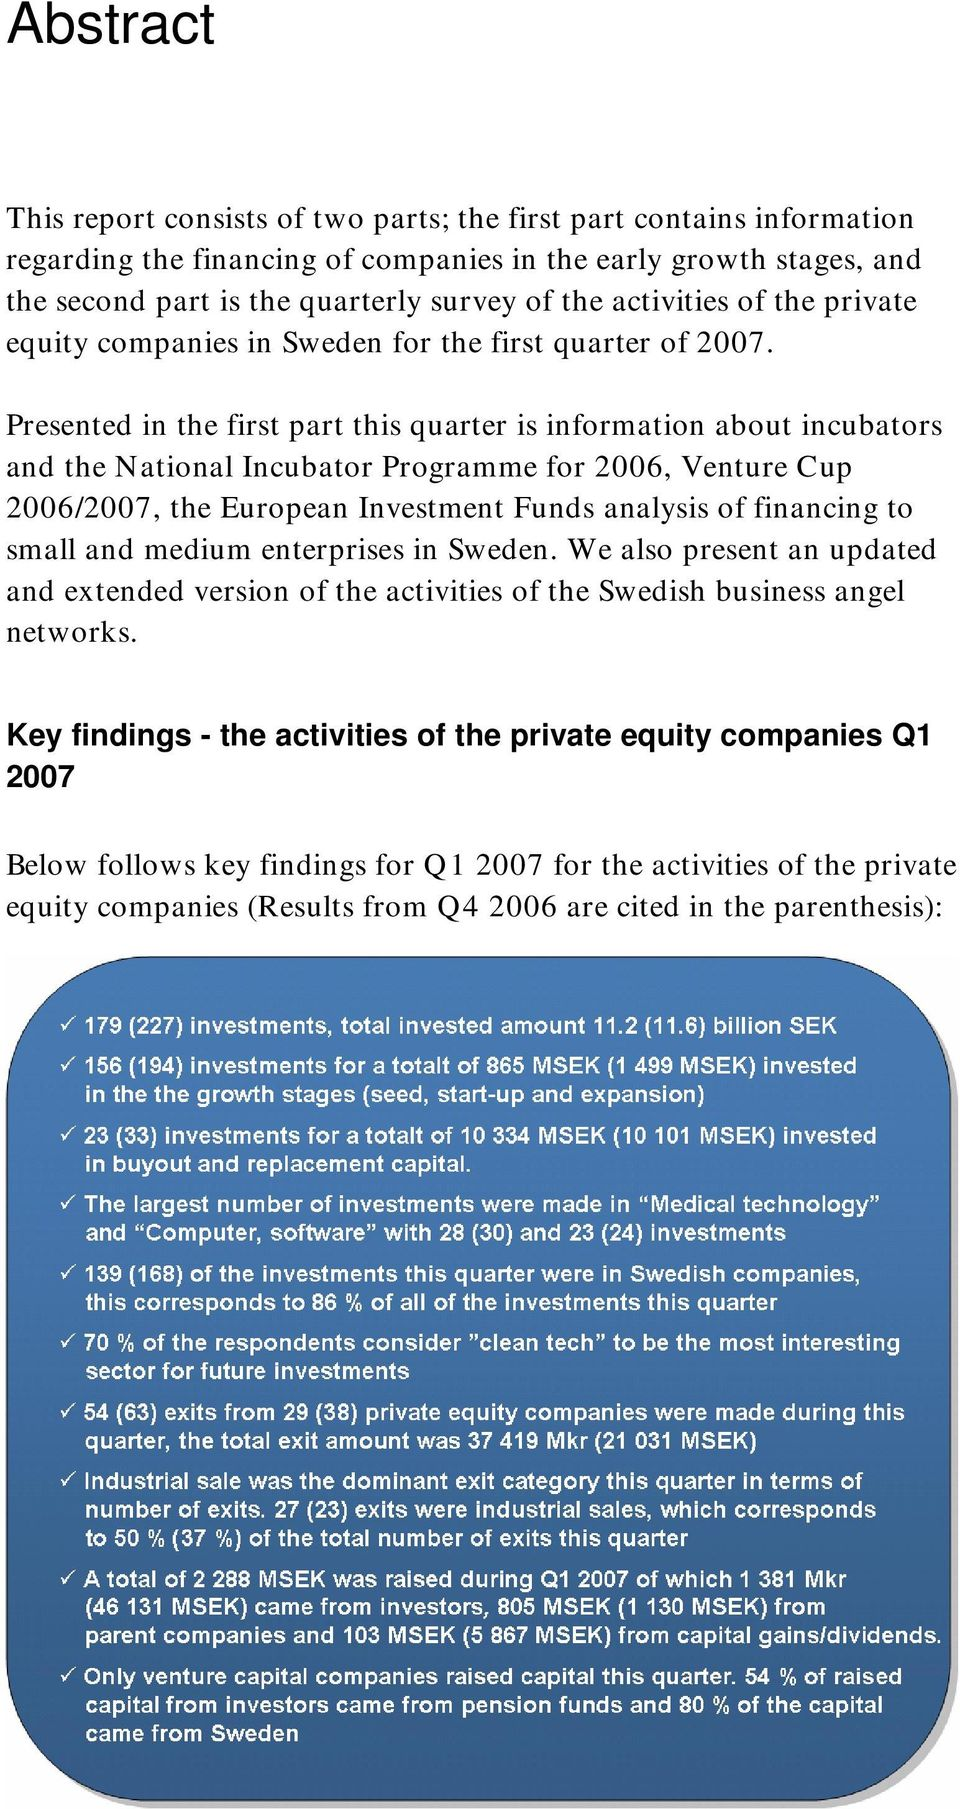 Presented in the first part this quarter is information about incubators and the National Incubator Programme for 2006, Venture Cup 2006/2007, the European Investment Funds analysis of financing to